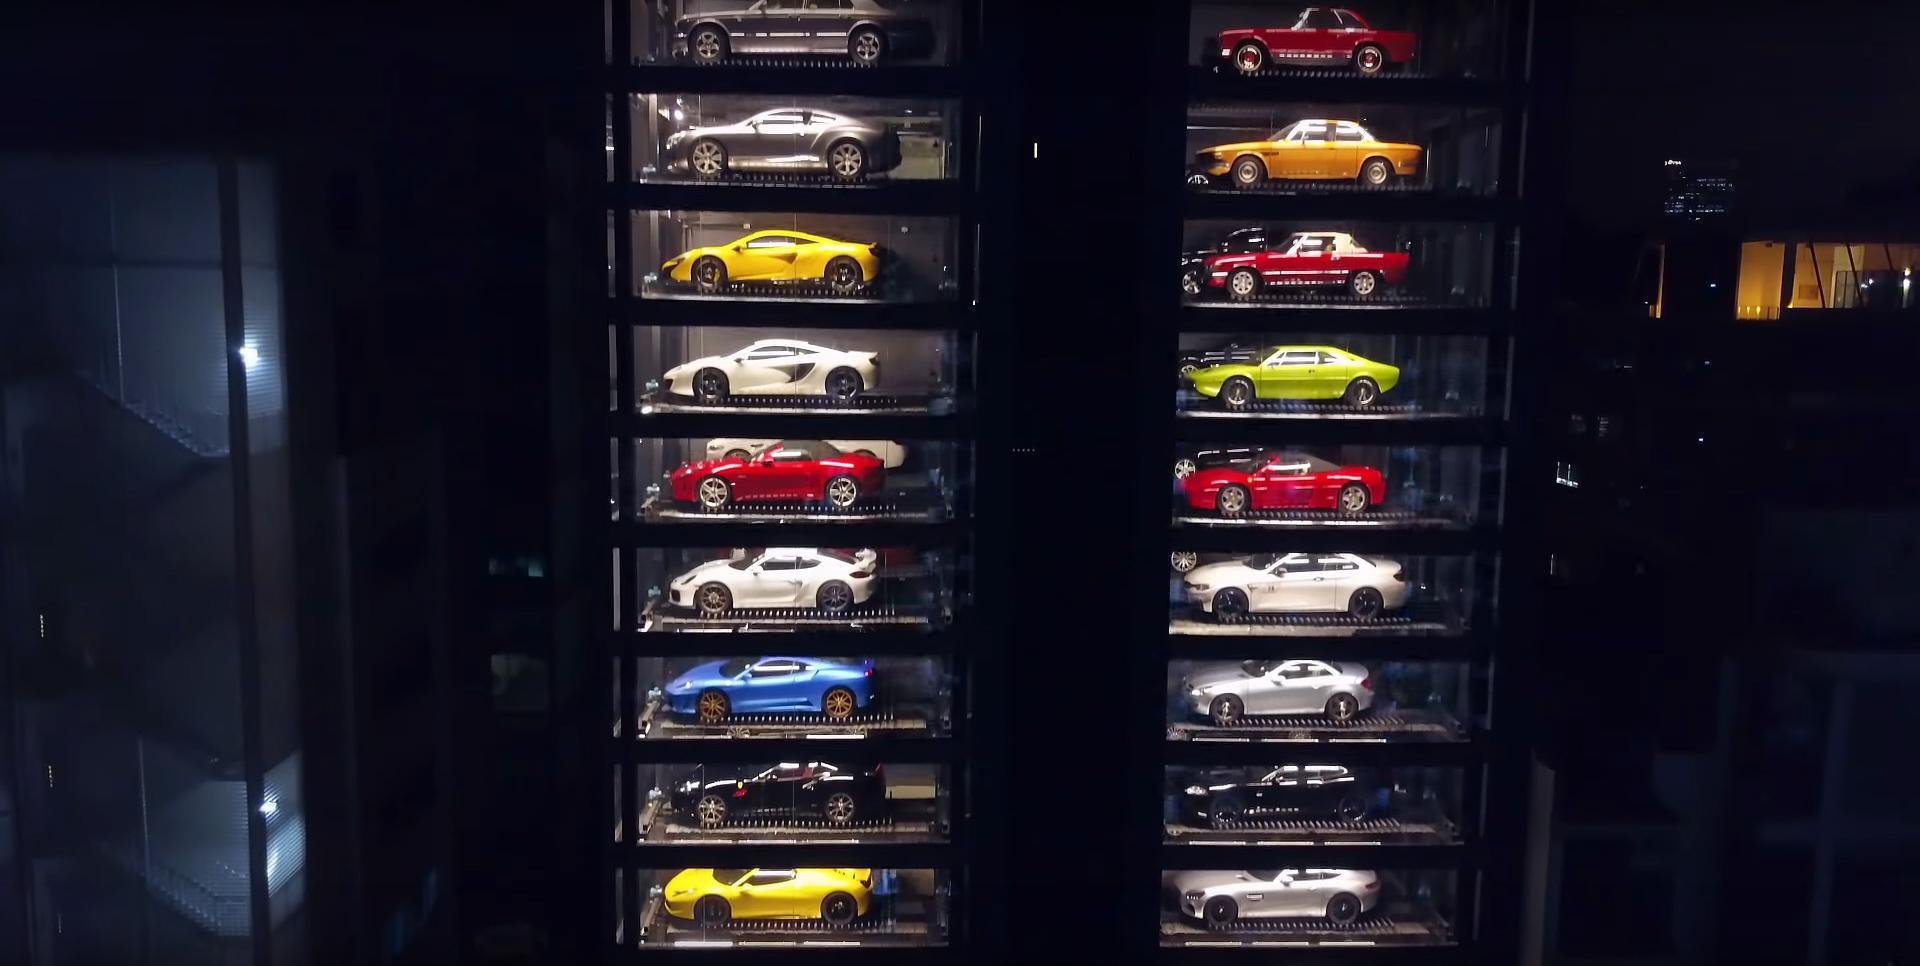 Supercars in snoepautomaat